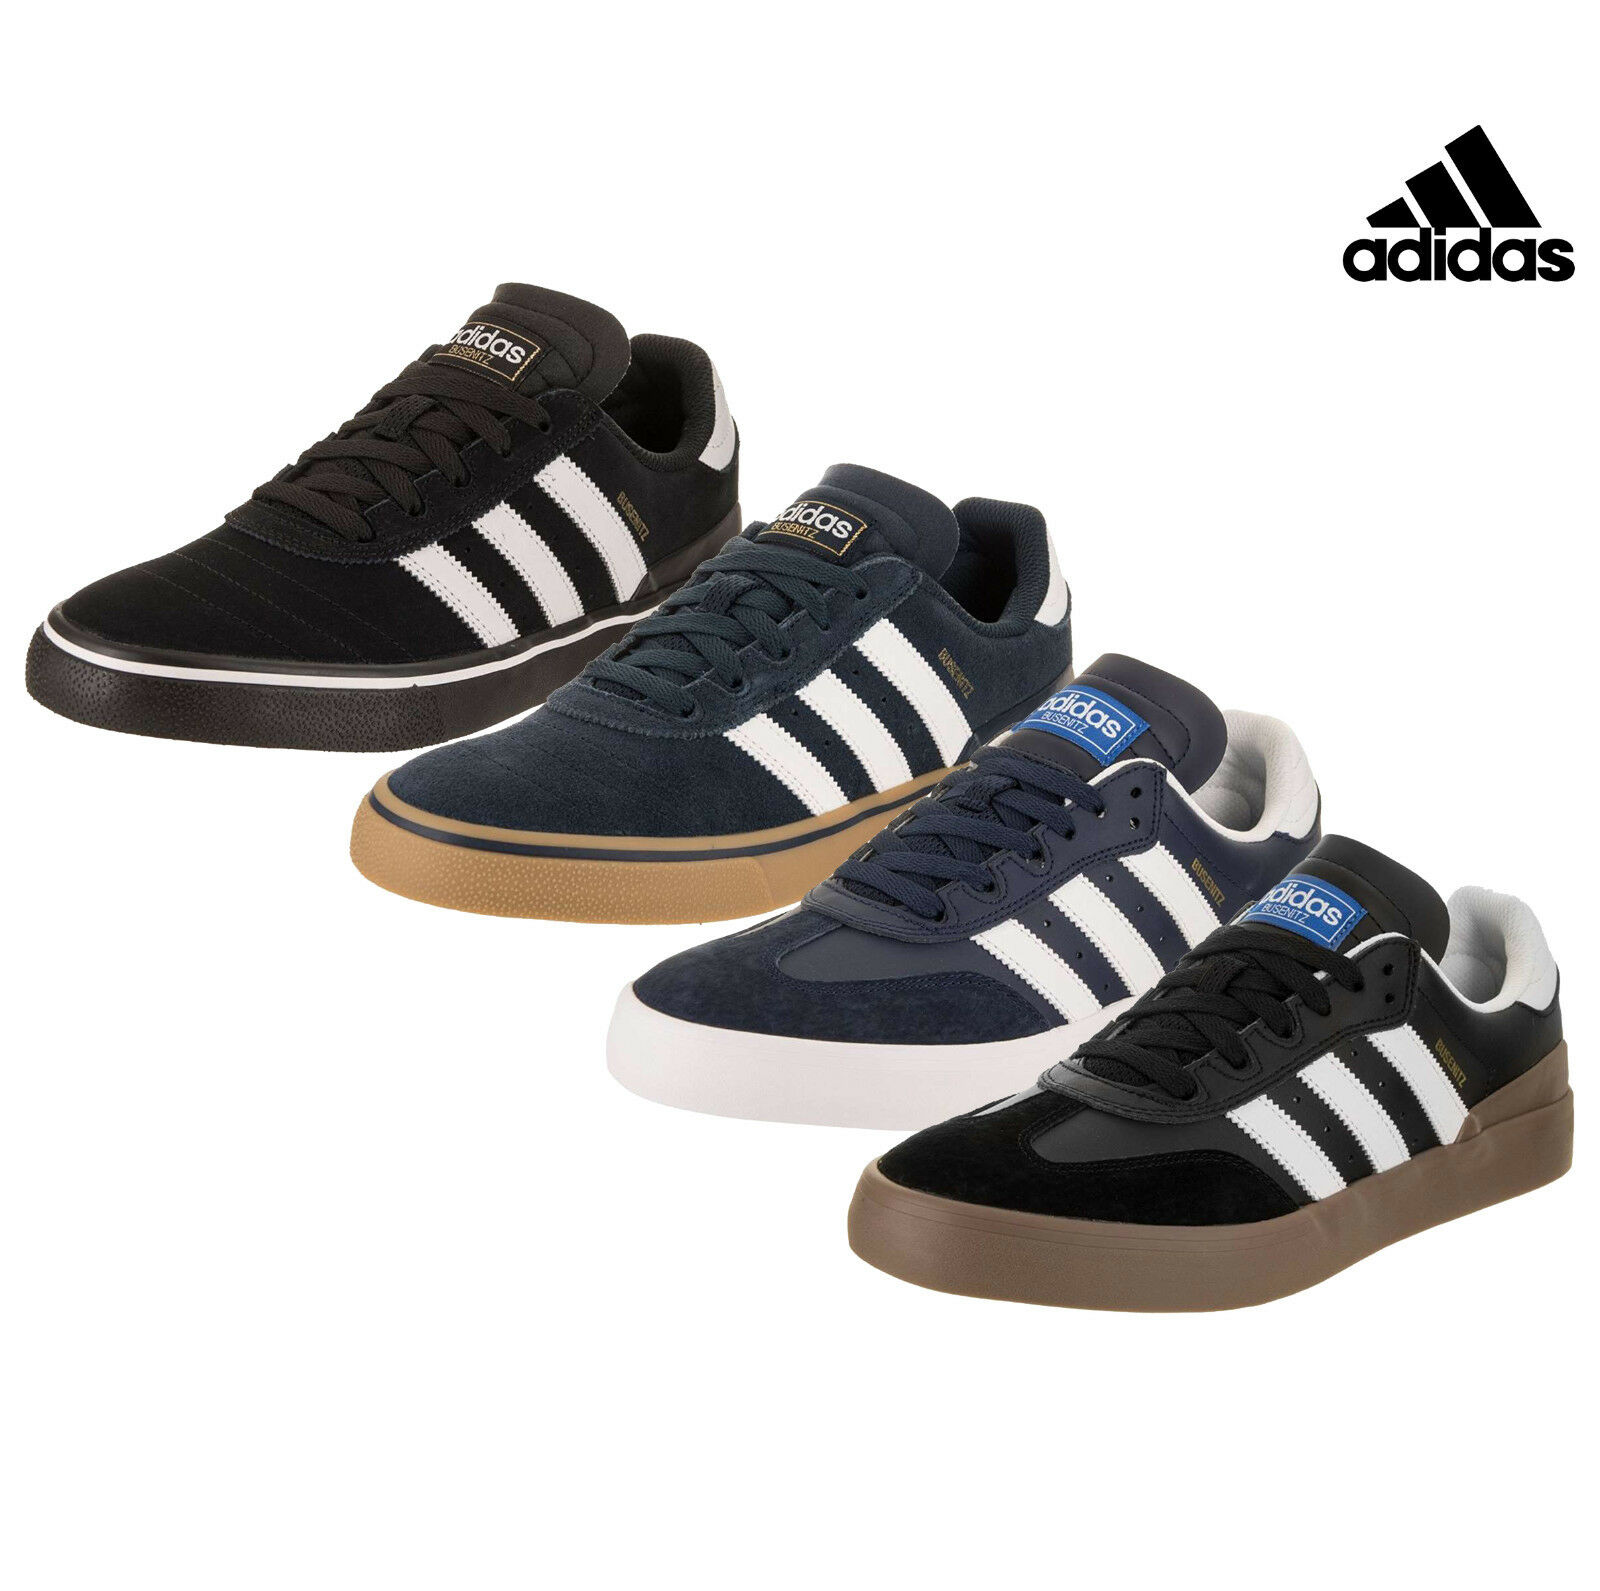 Adidas Busenitz Vulc Skate Shoes Mens Sneakers Adidas Skateboarding NEW Cheap women's shoes women's shoes